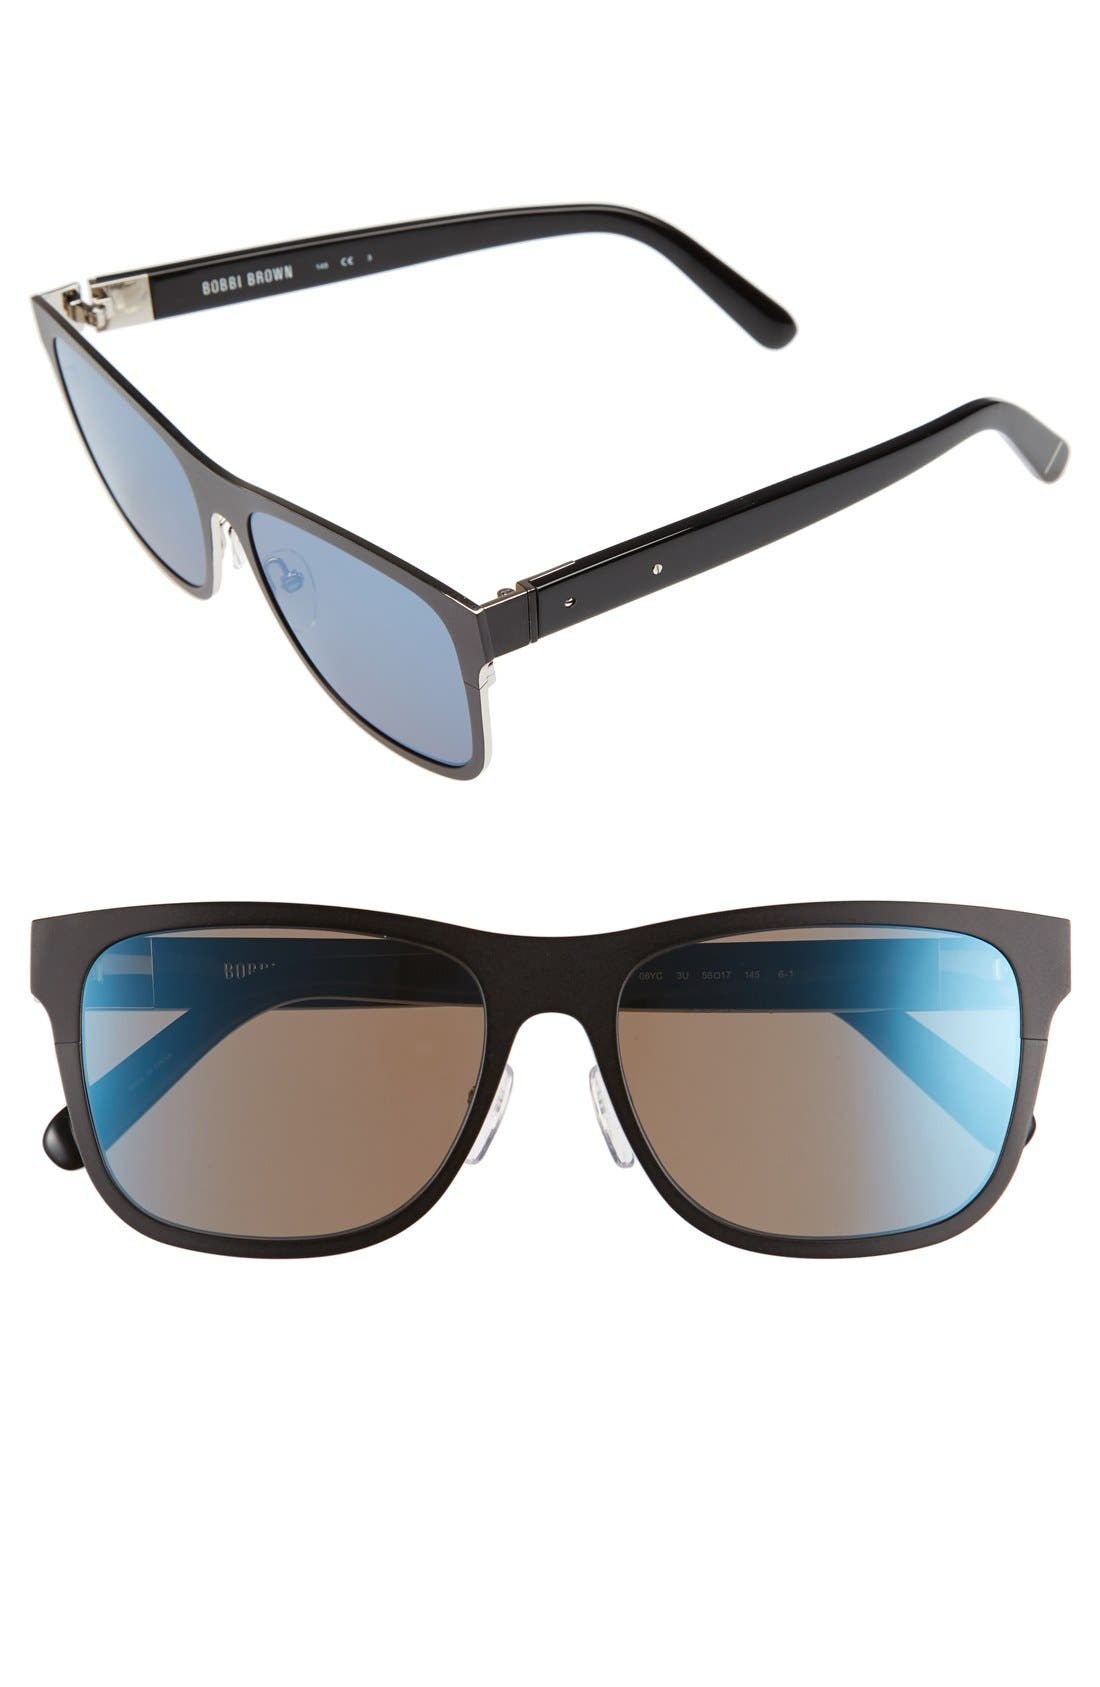 Alternate Image 1 Selected - Bobbi Brown 'The Zach' 56mm Retro Sunglasses